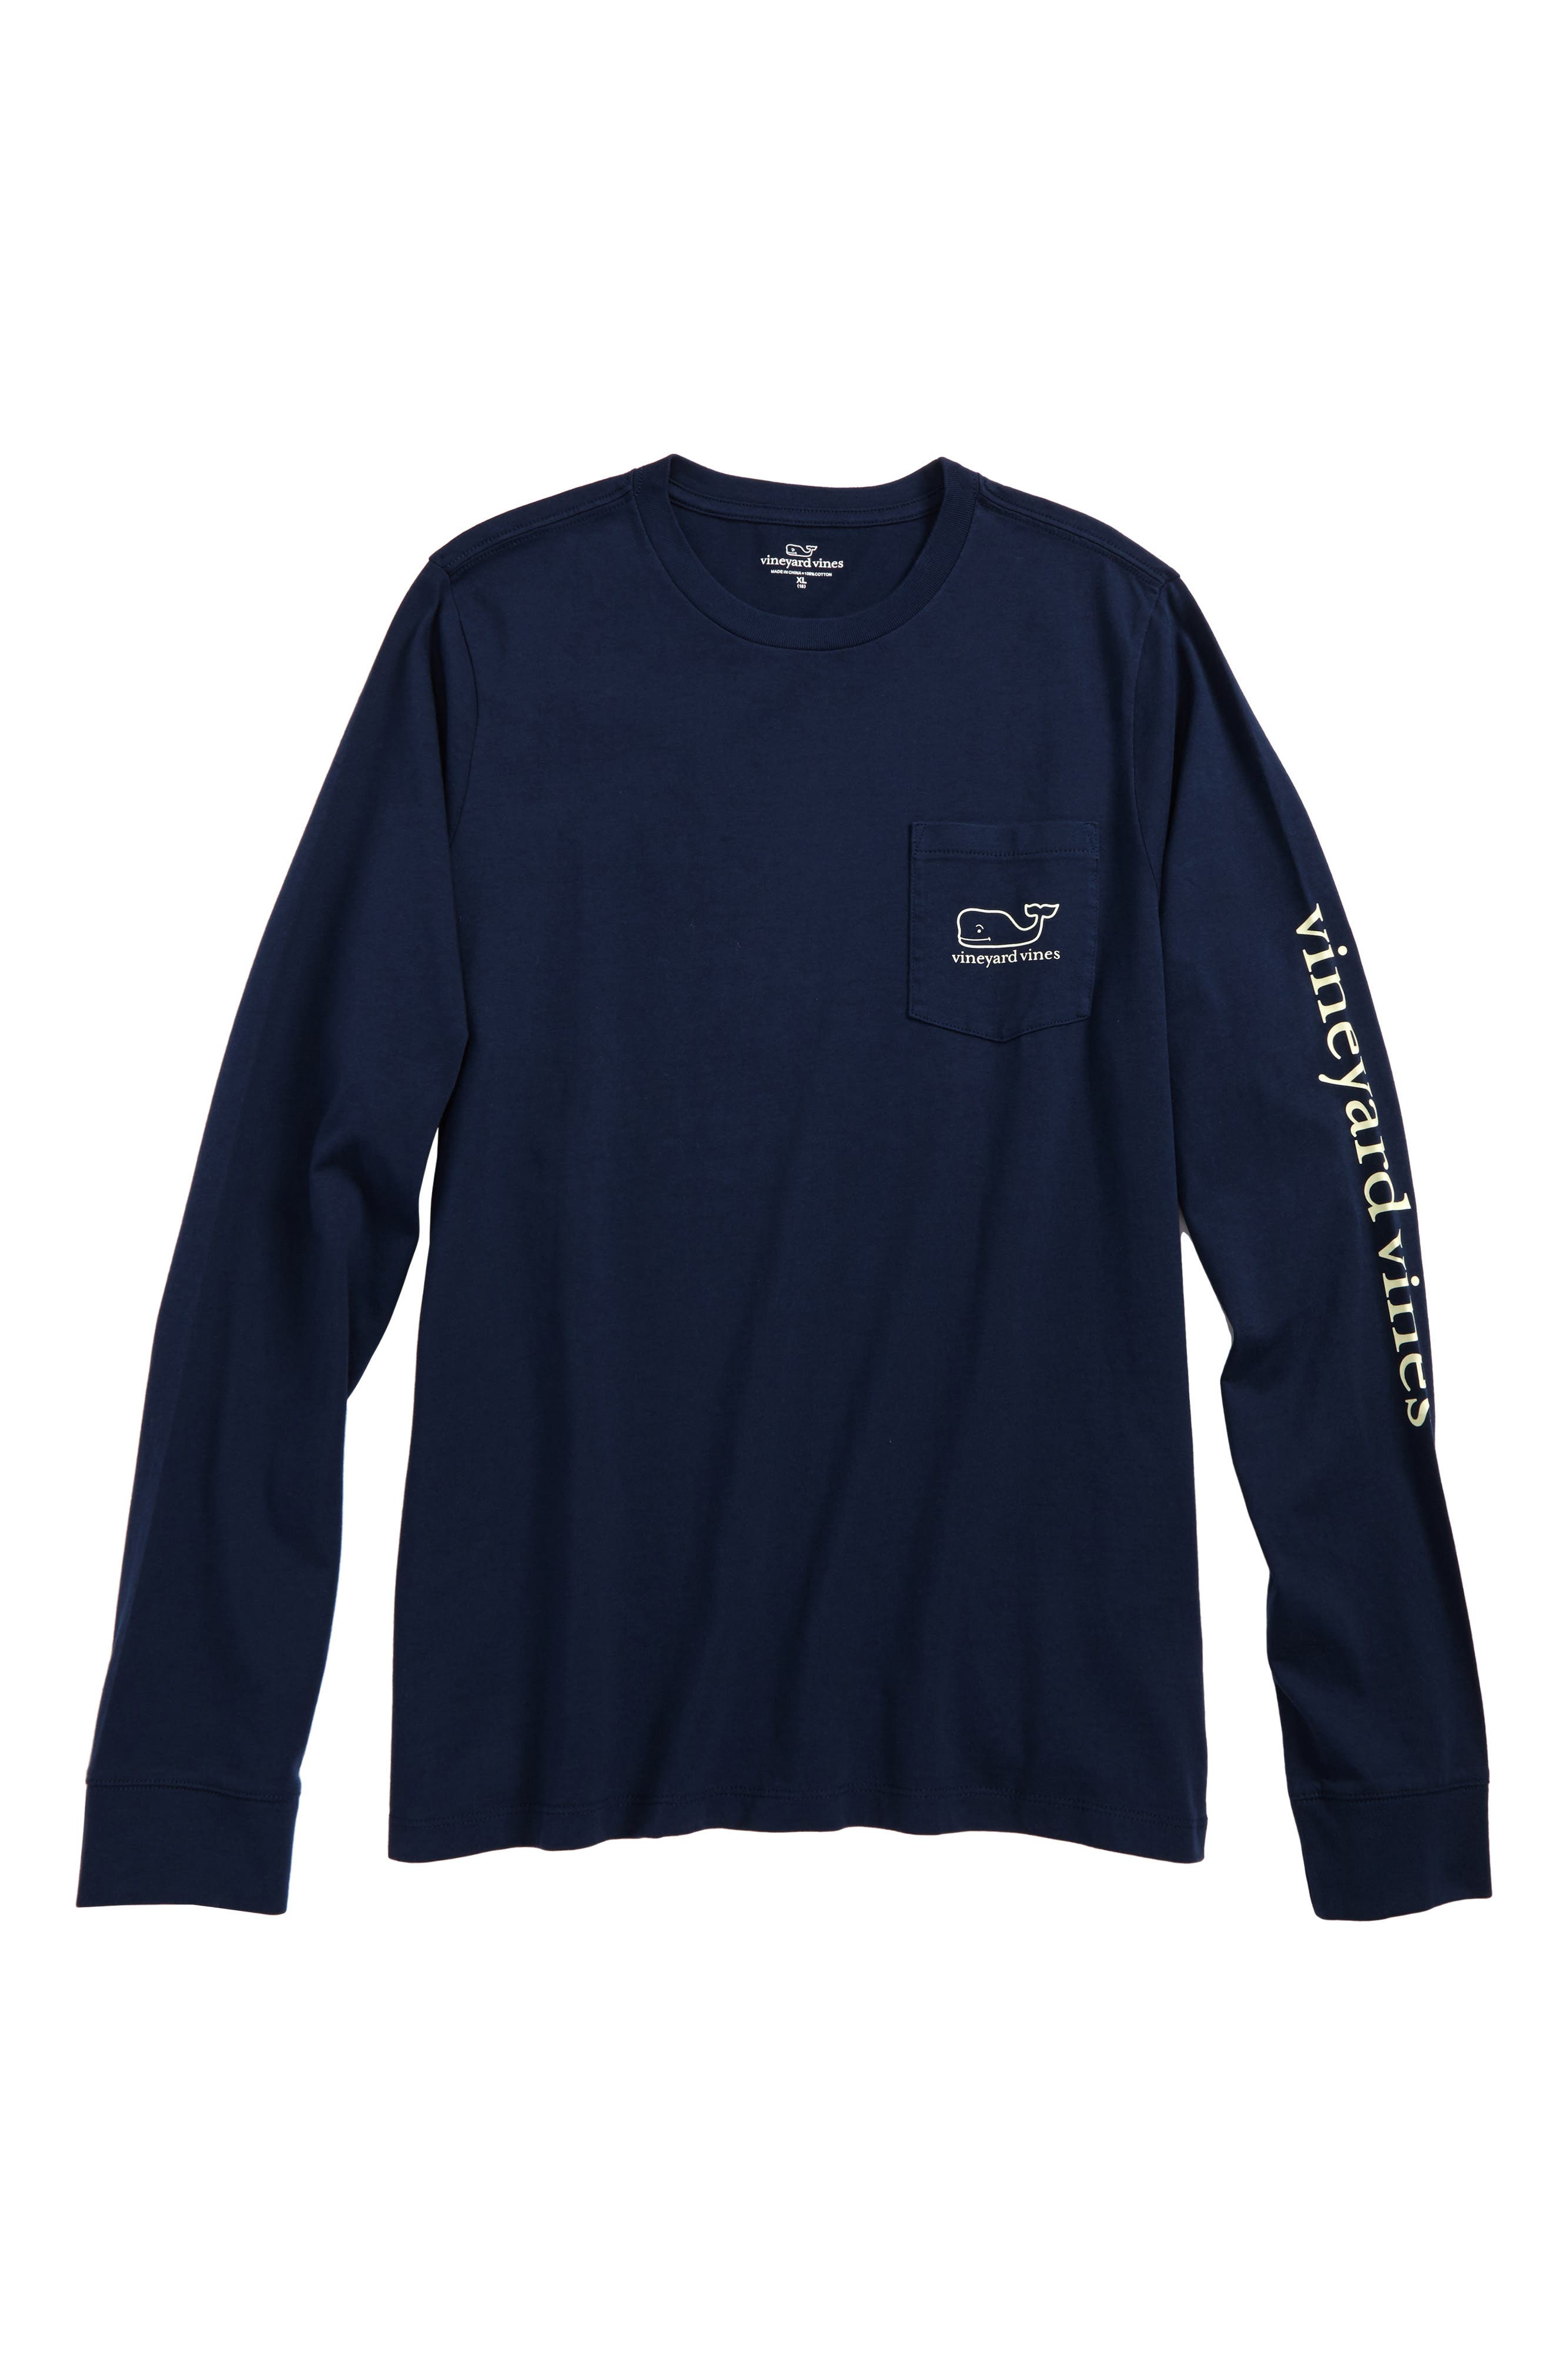 vineyard vines New Year's Scene Whale Pocket T-Shirt (Big Boys)